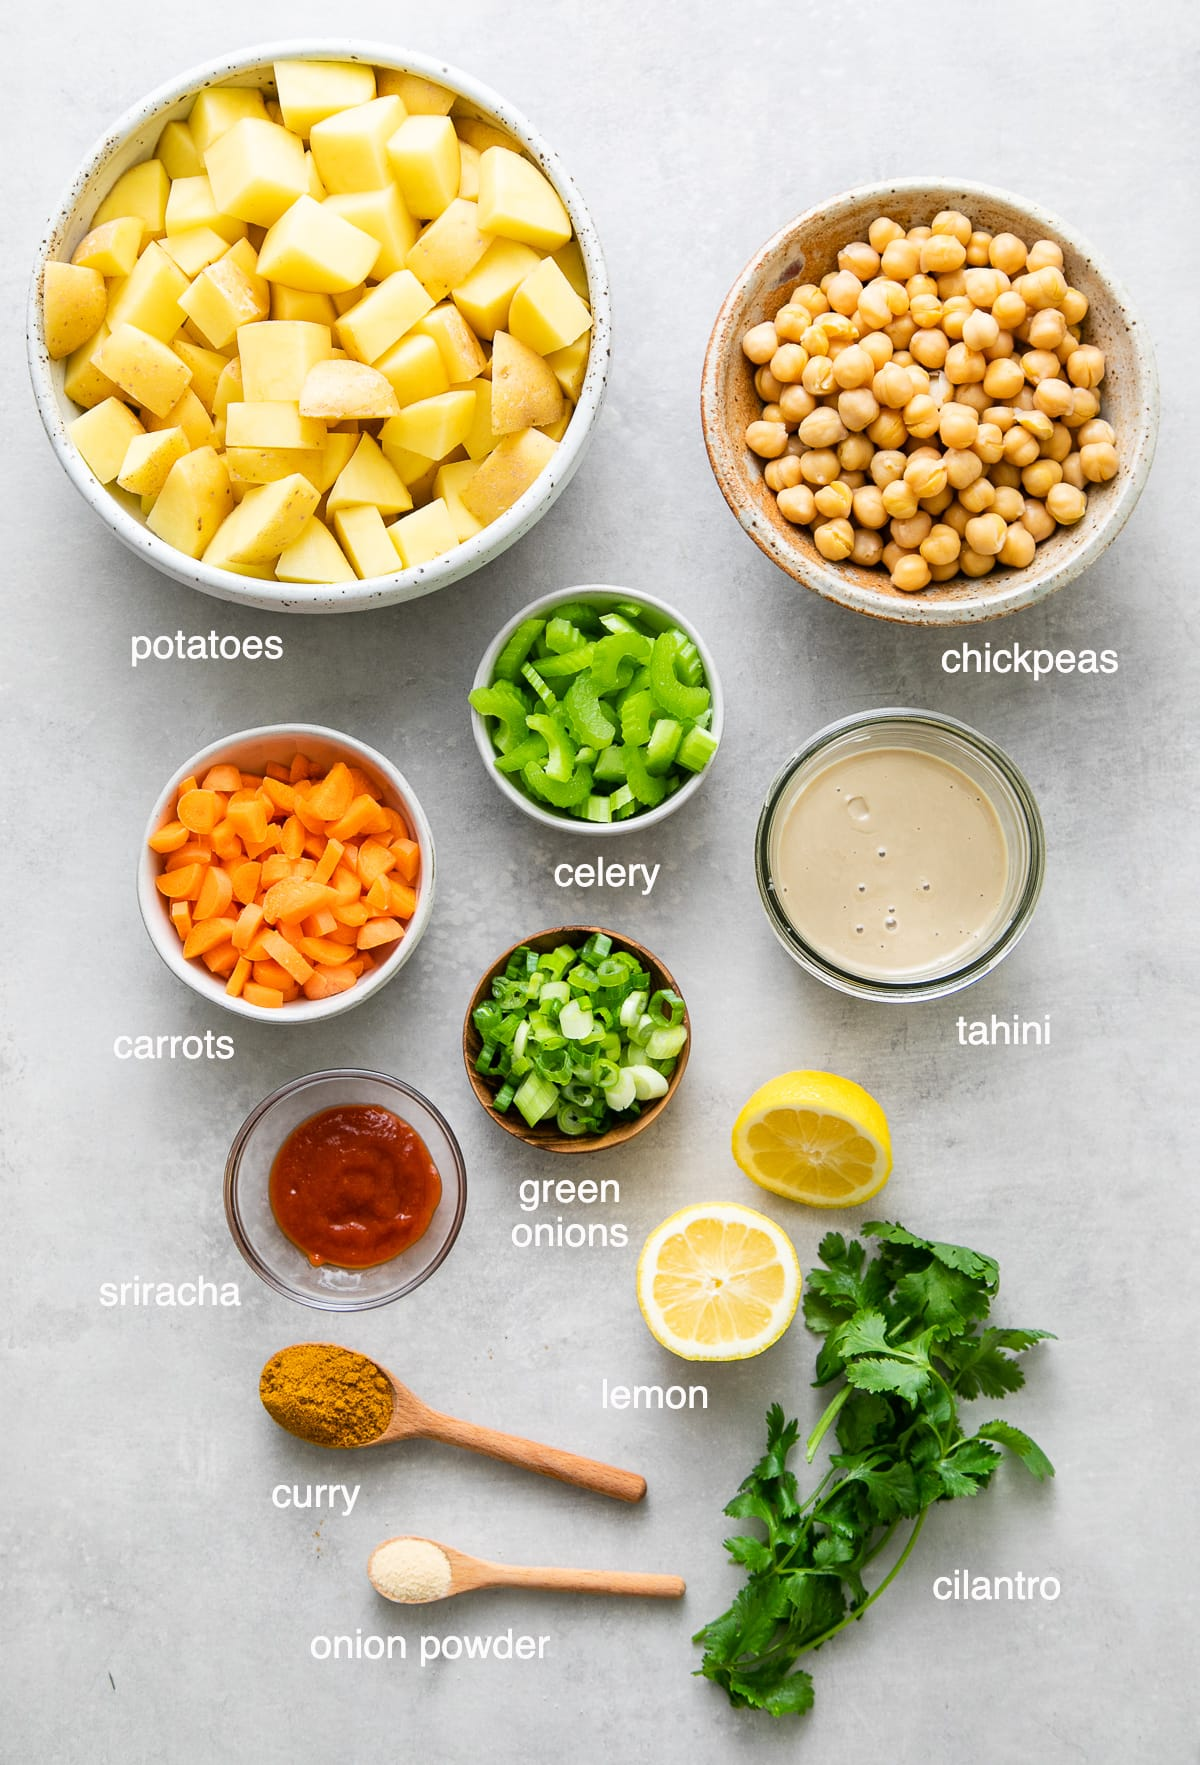 top down view of ingredients used to make curried potato salad recipe.